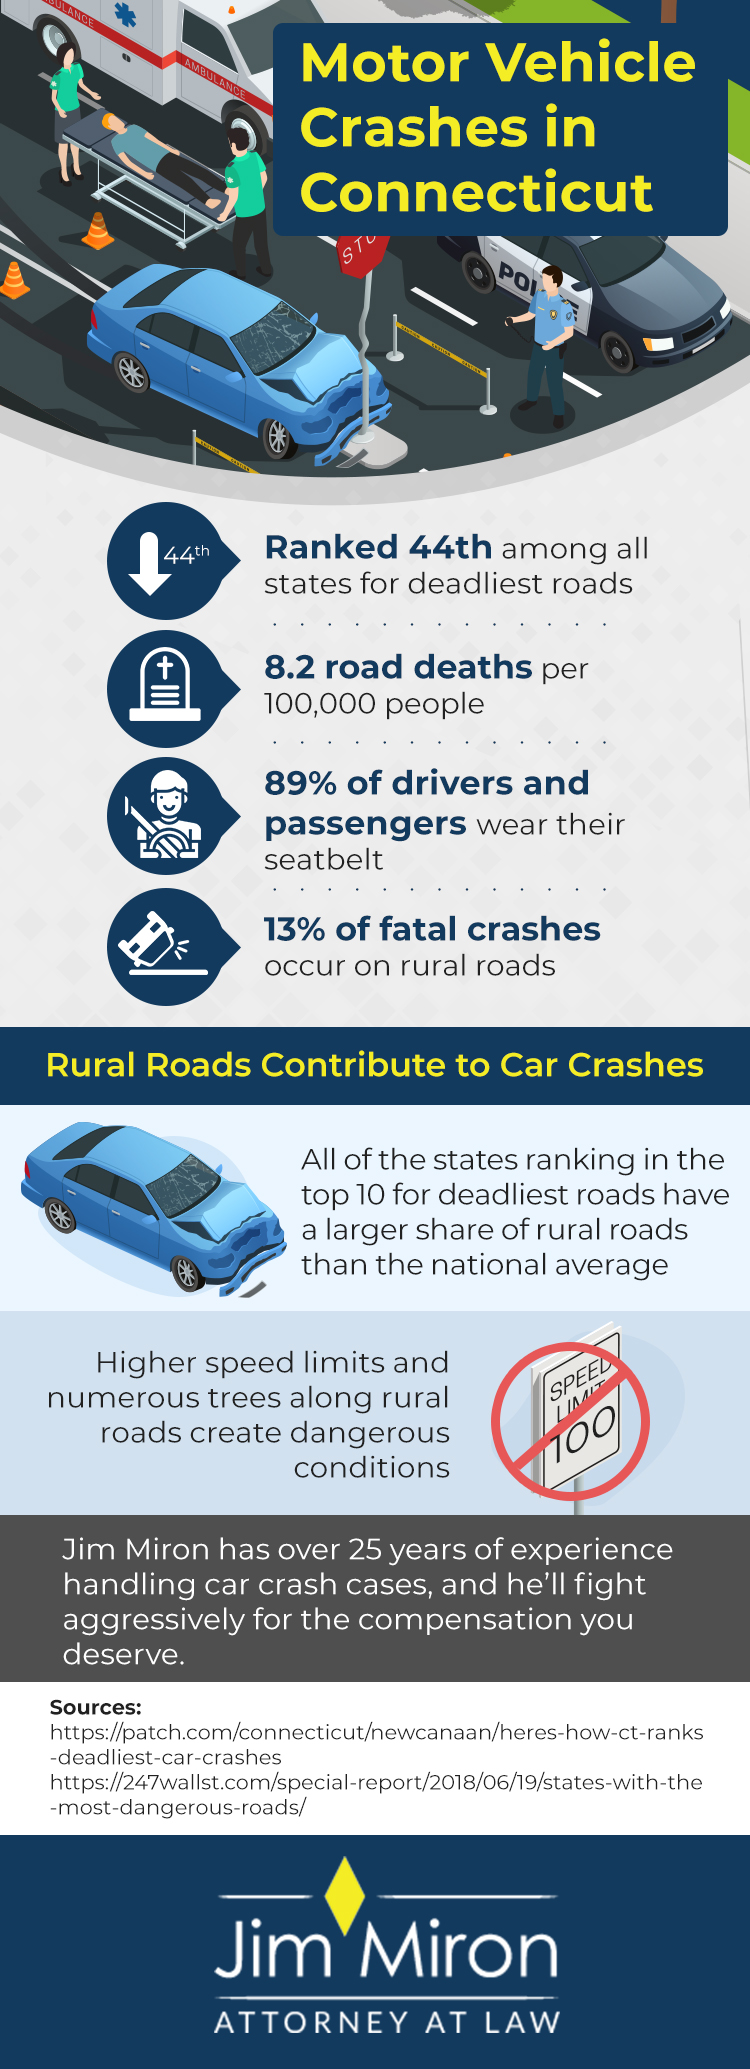 infographic providing motor vehicle crash data for Connecticut